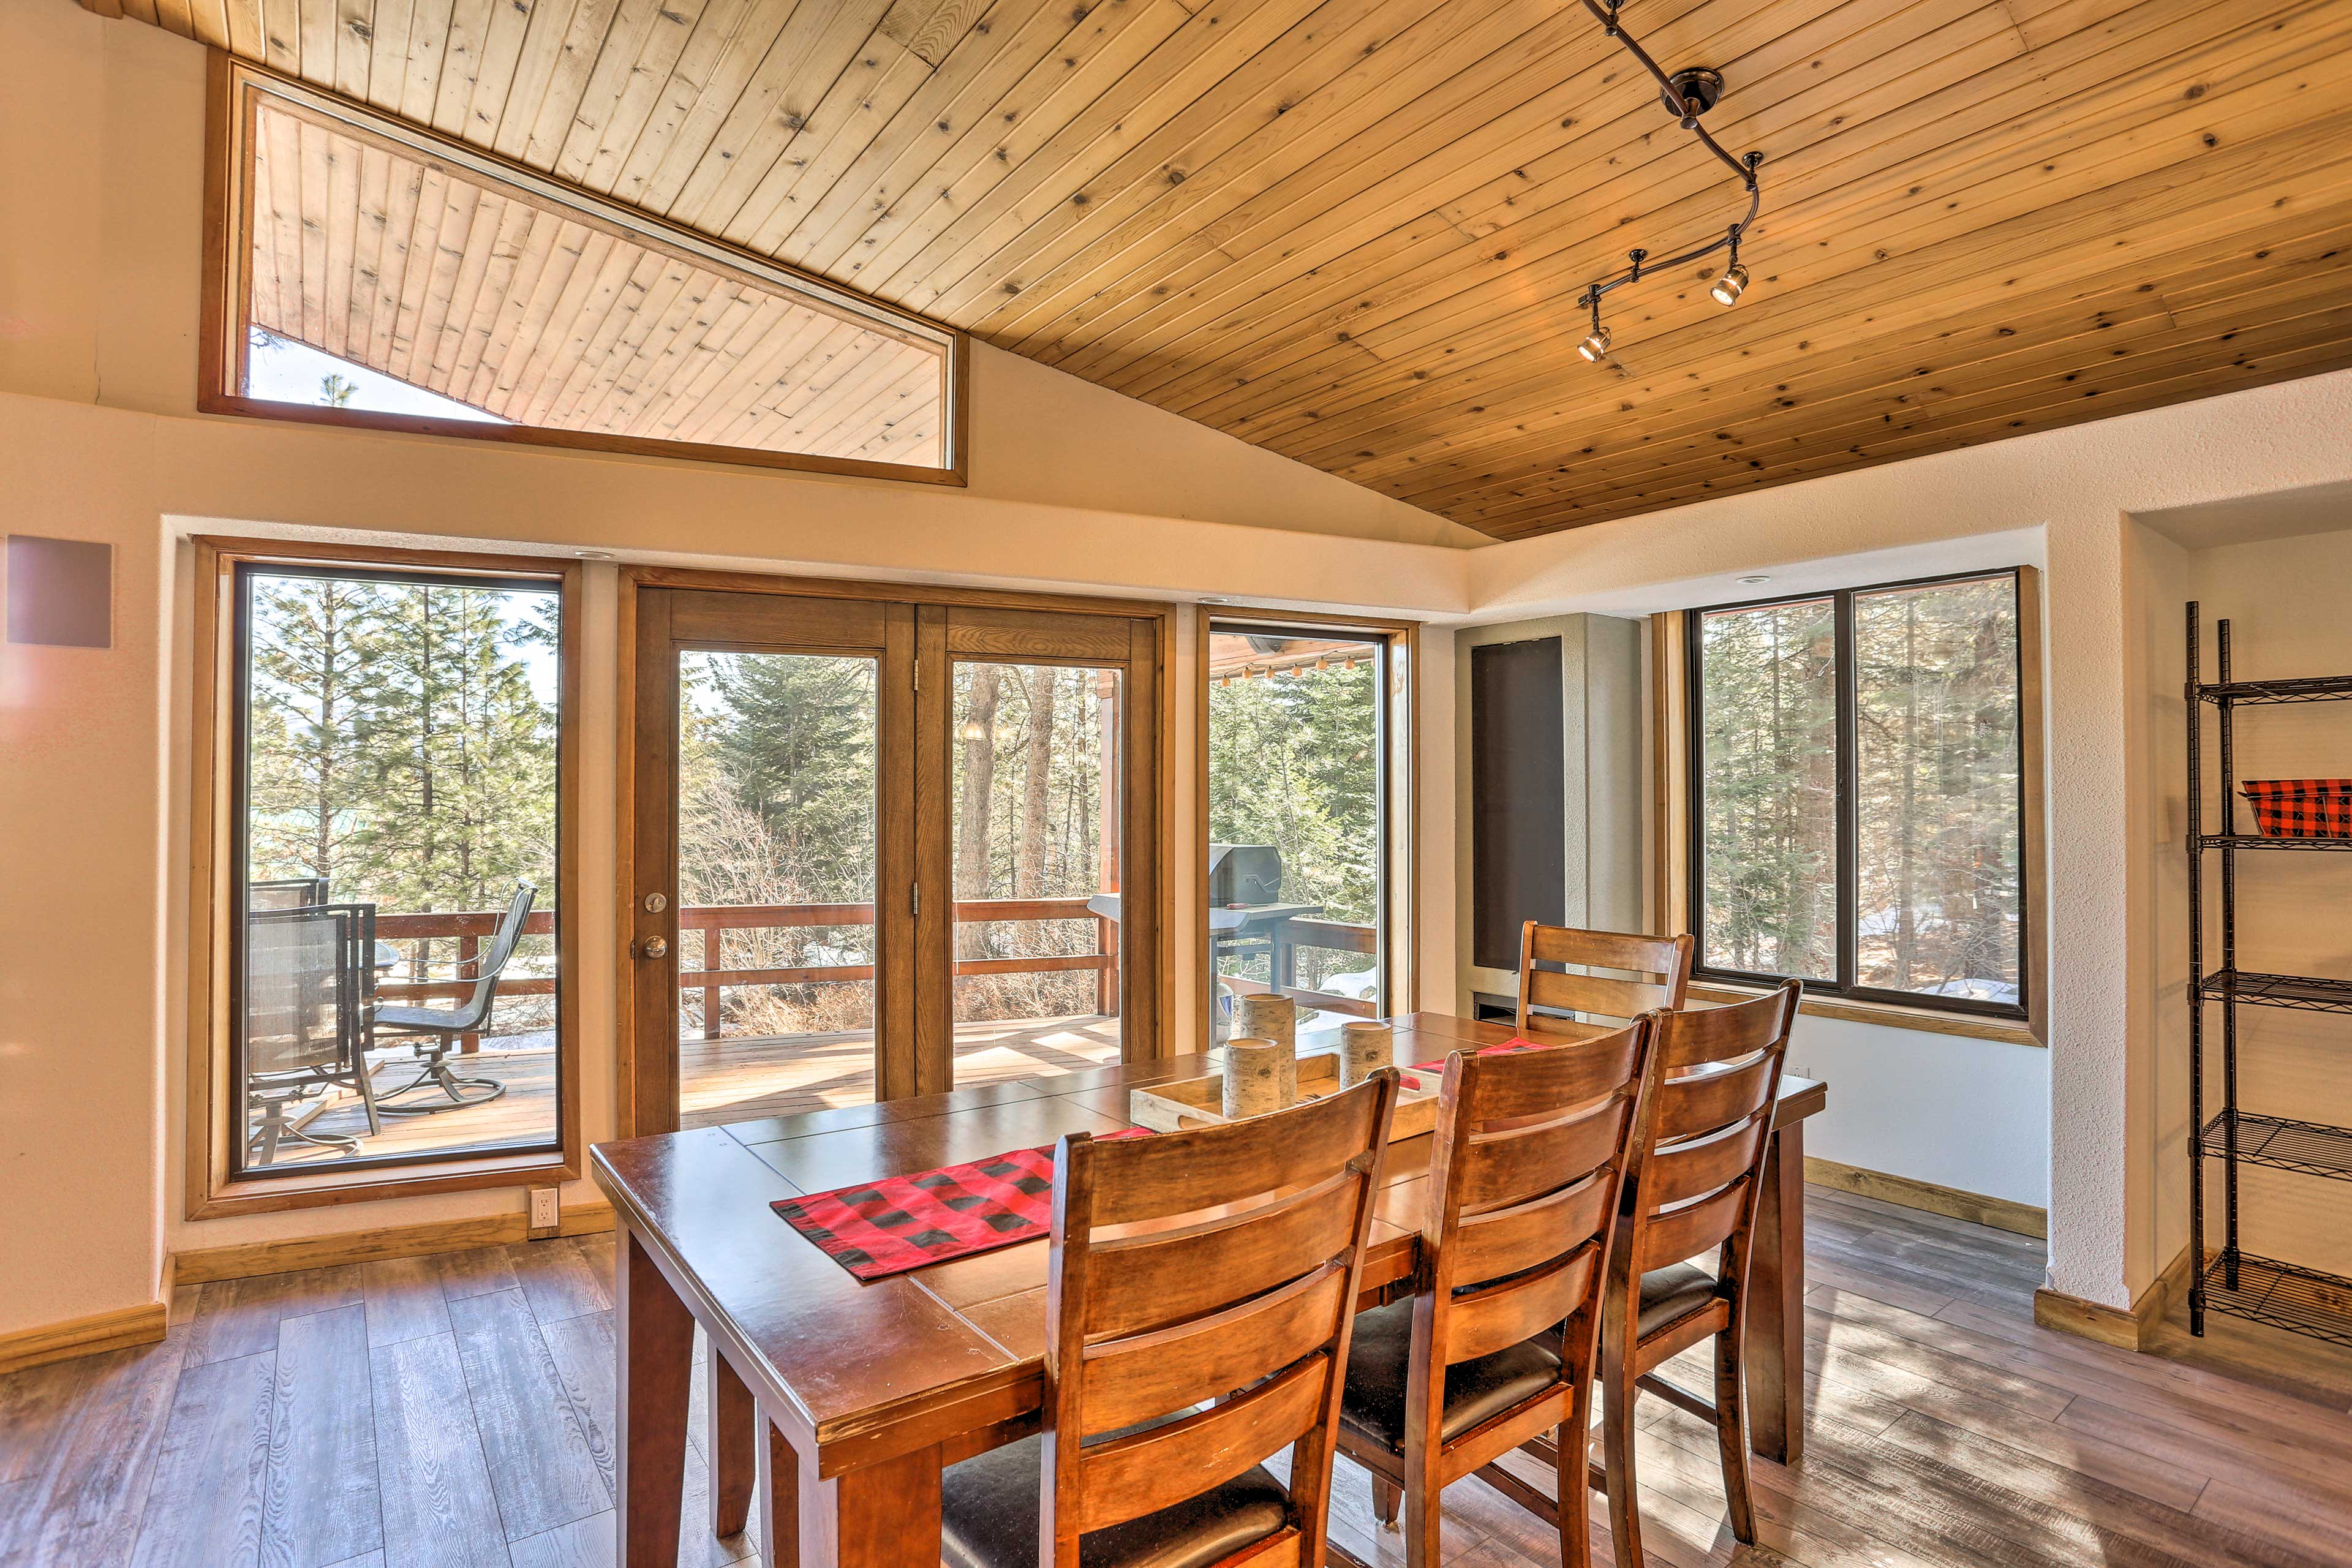 Open the door for a fresh mountain breeze while you eat.